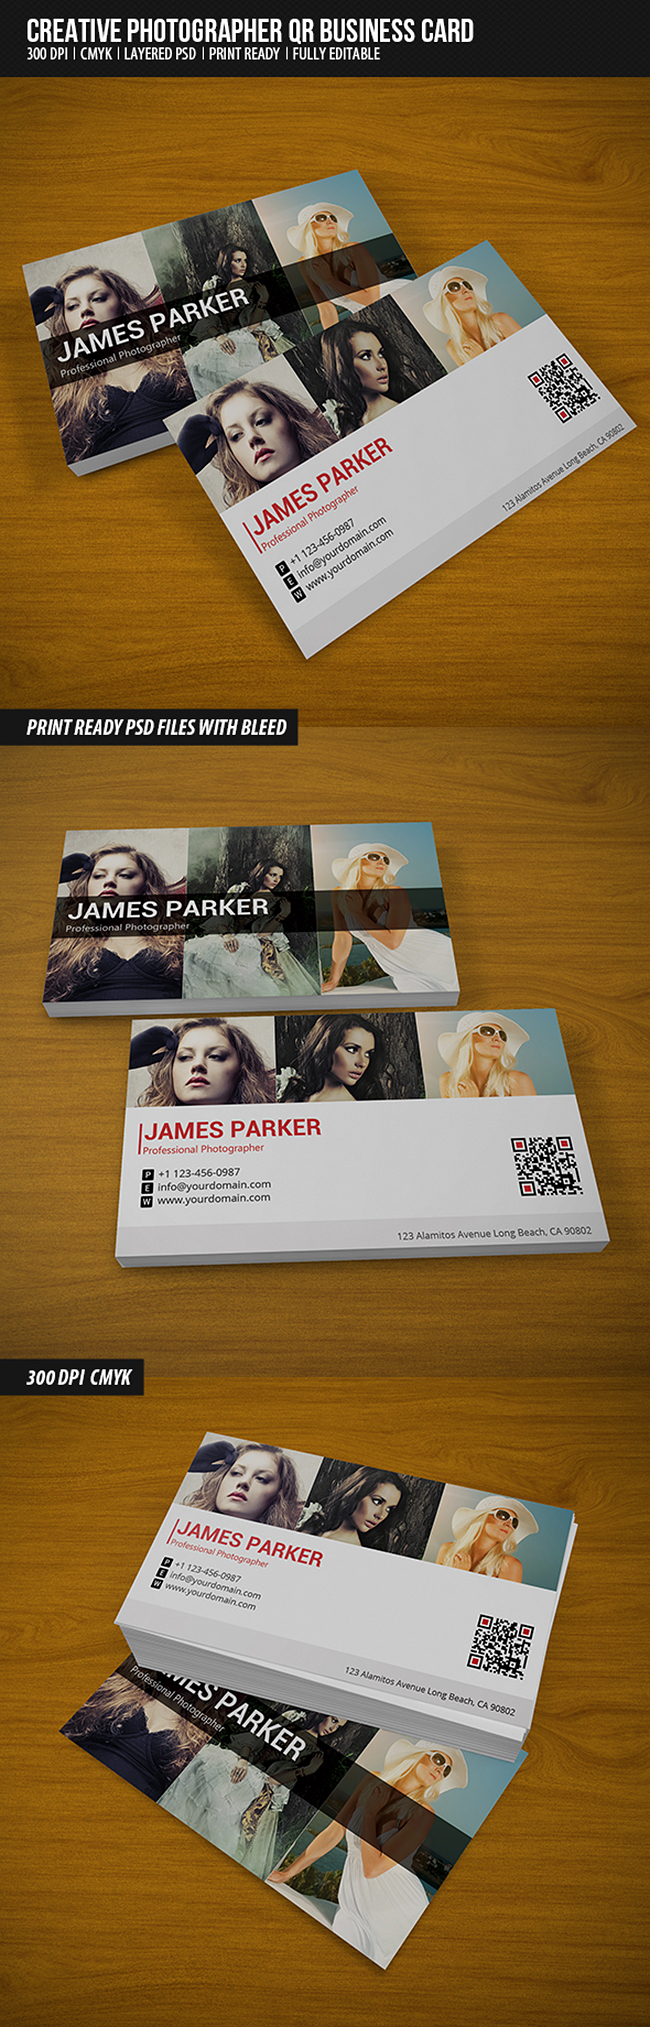 preview1 Creative Photographer QR Business Card